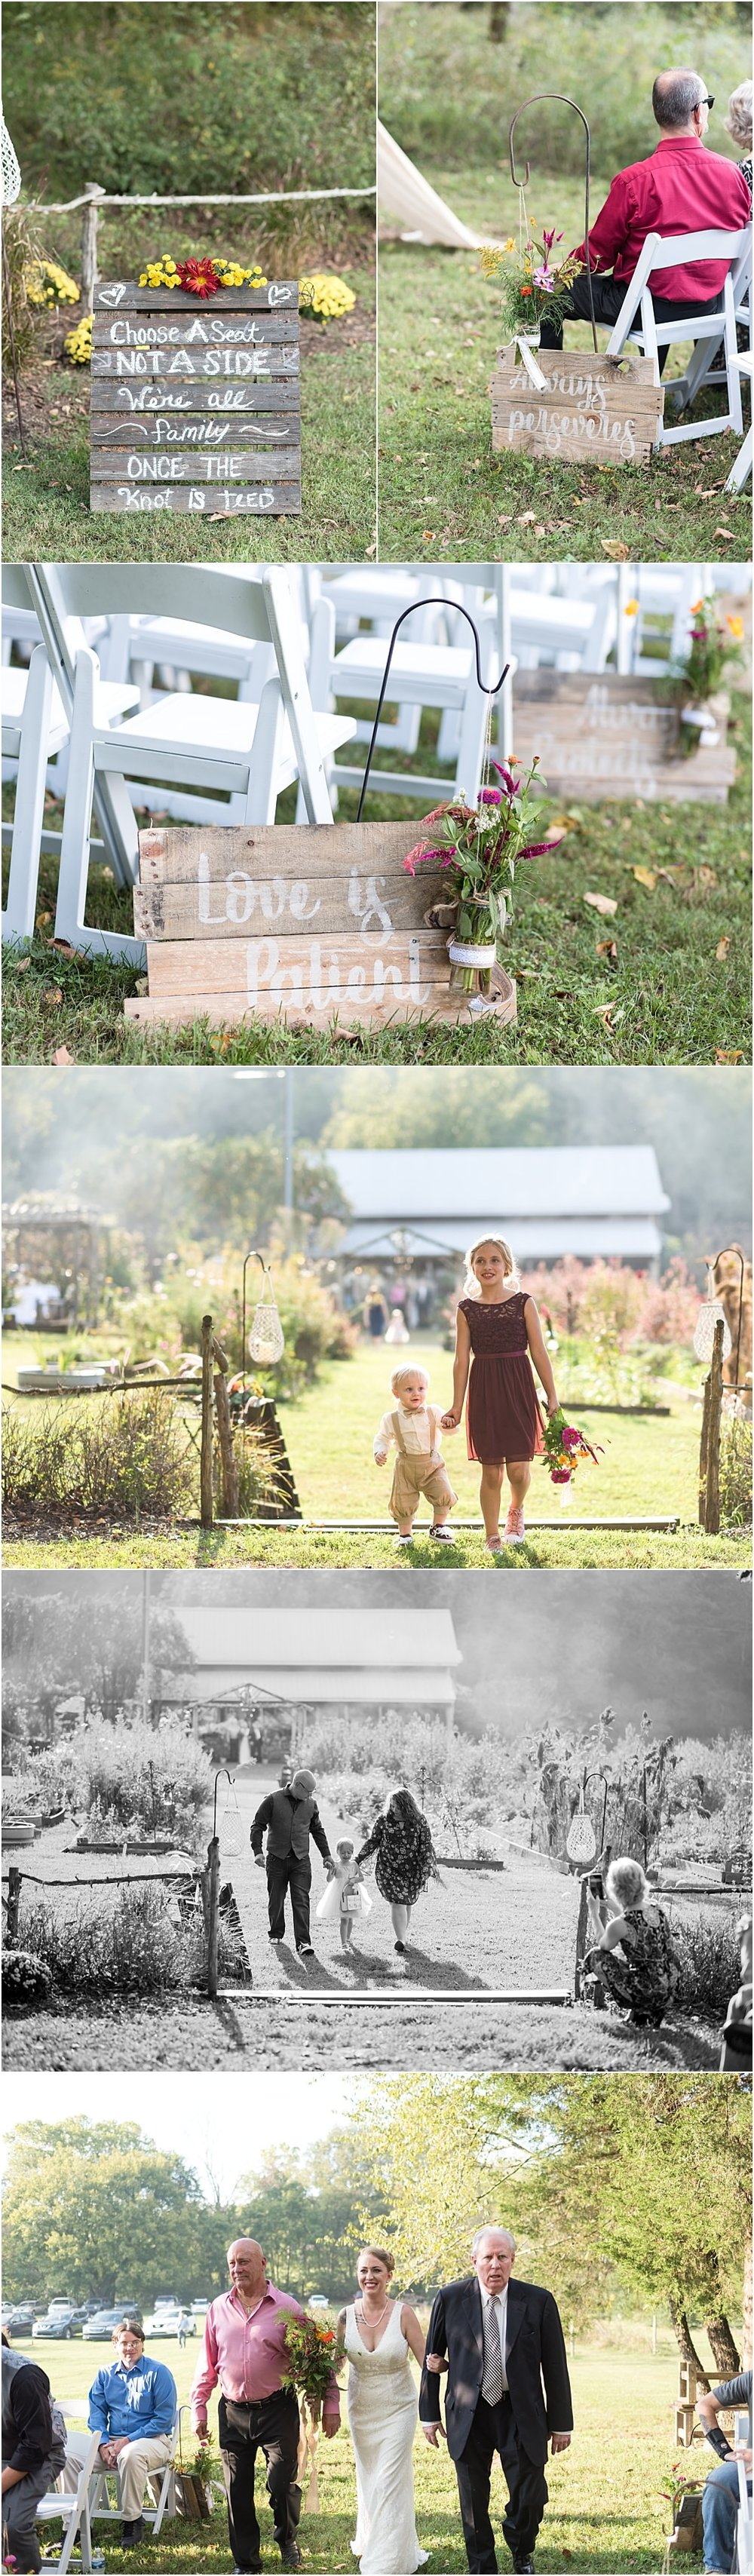 Jacob-and-Misty-Madison-Creek-Farms-Wedding-in-Goodlettsville-TN-Nashville-Wedding-Photographers+2